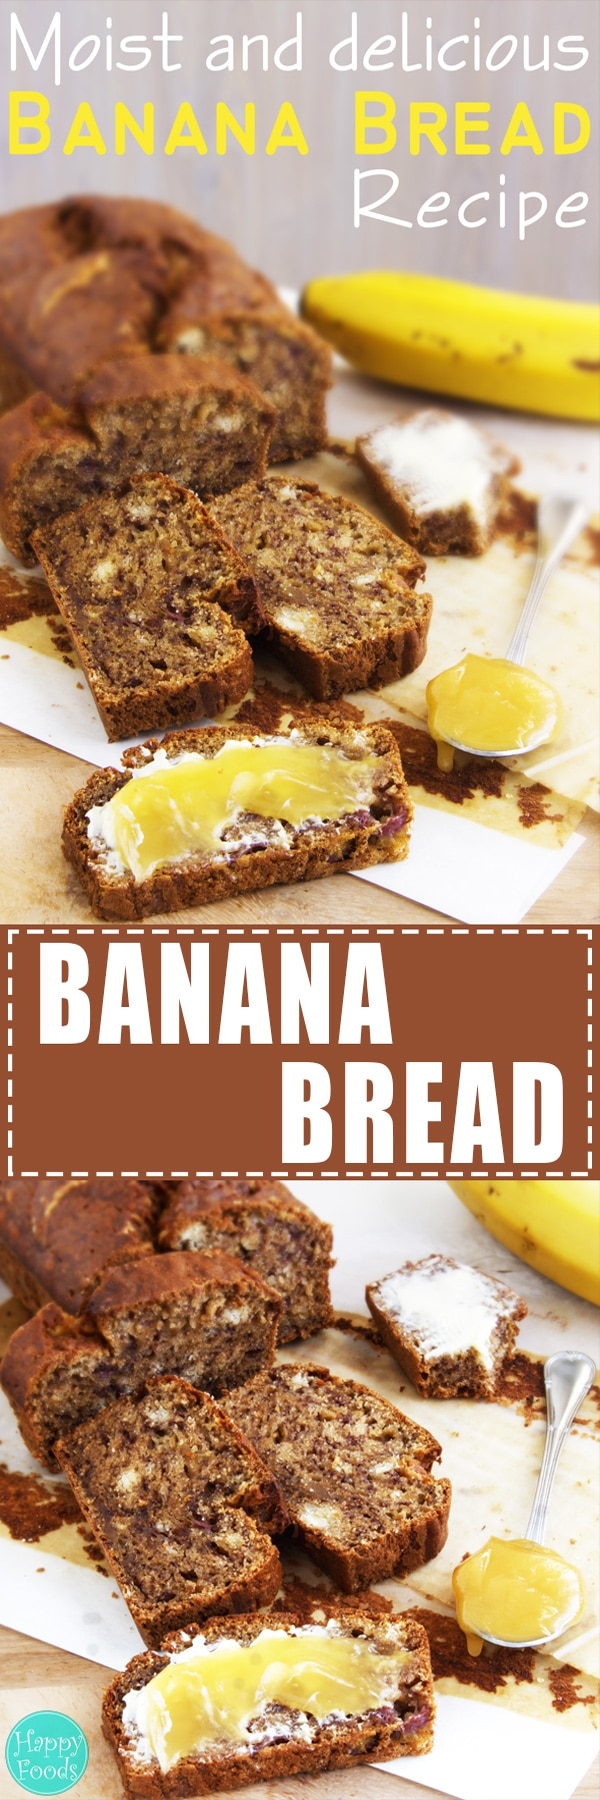 Easy Banana Bread - Moist and delicious homemade banana bread recipe. | happyfoodstube.com